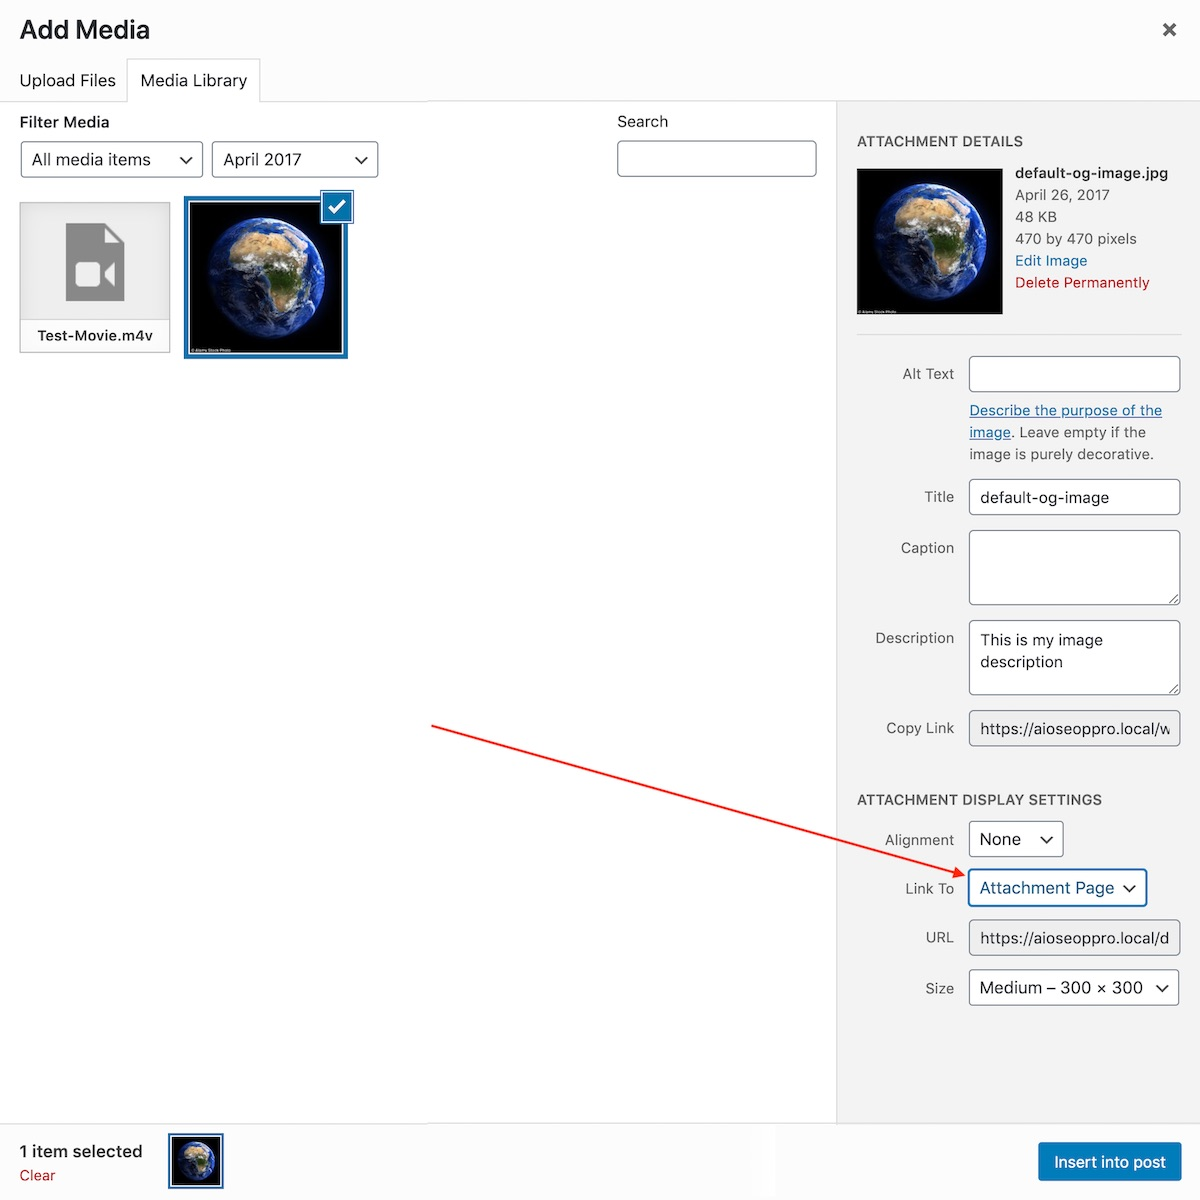 Linking to an Attachment Page in the Classic Editor